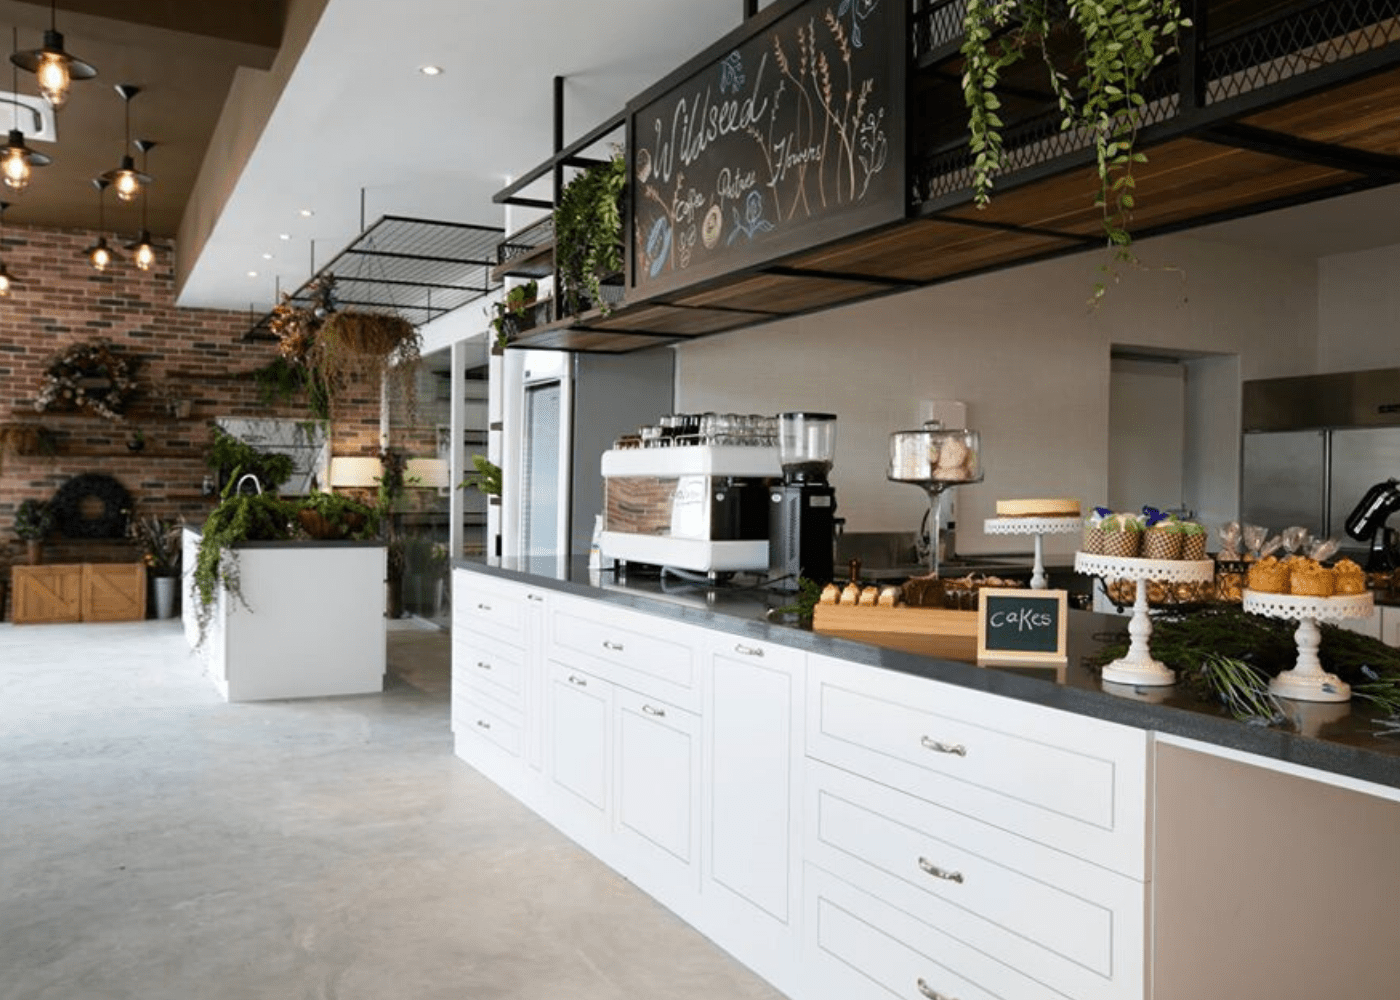 Wildseed Cafe & Bar | Cool cafes in Singapore